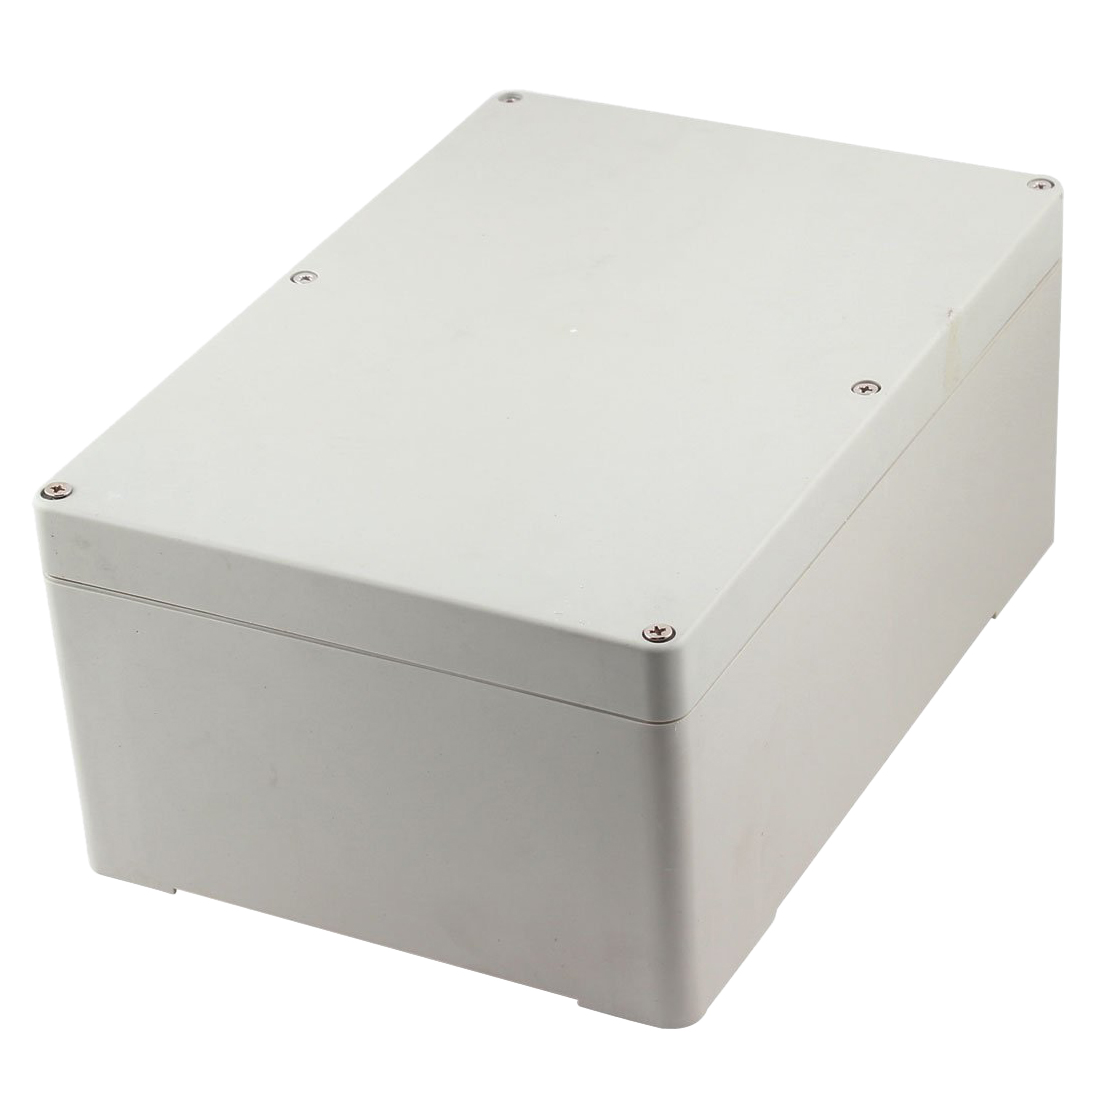 Waterproof Plastic Enclosure Case Junction Box 265mm x 185mm x 115mm Plastic DIY Outdoor Electrical Connection box Cable Branch waterproof plastic enclosure case junction box 265mm x 185 mm x 115 mm l15